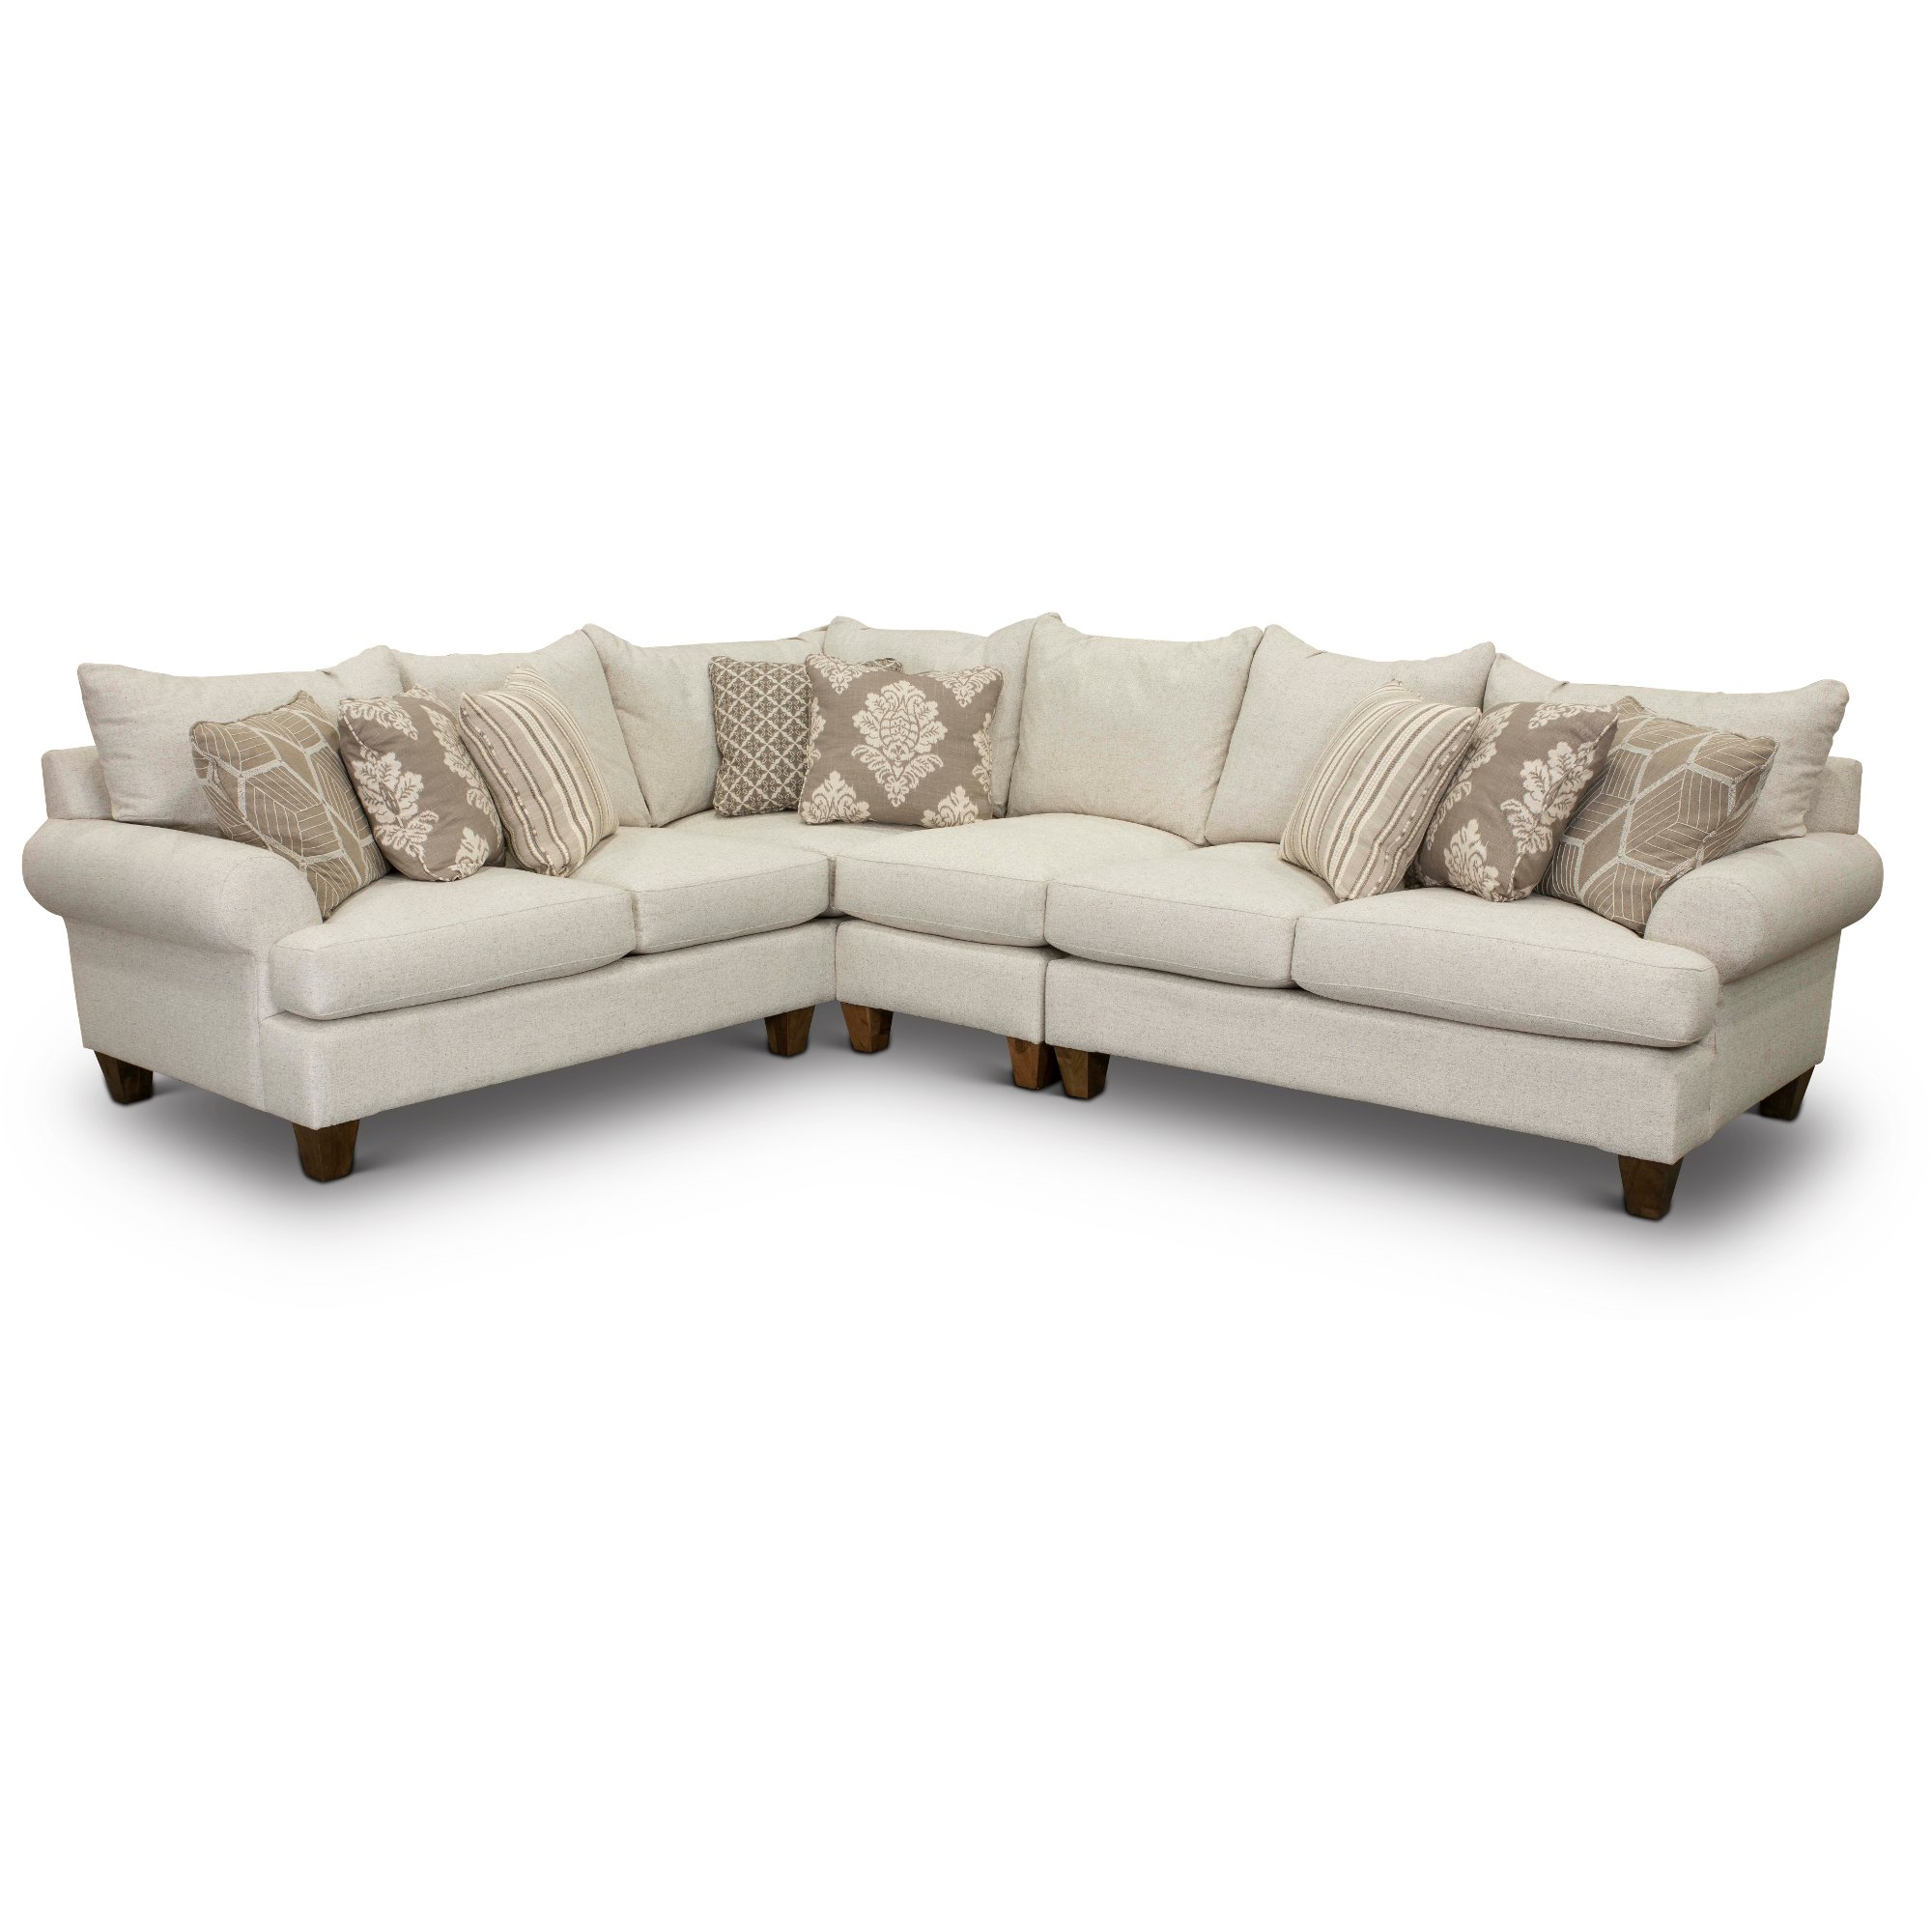 Linen Beige 3 Piece Sectional Sofa With